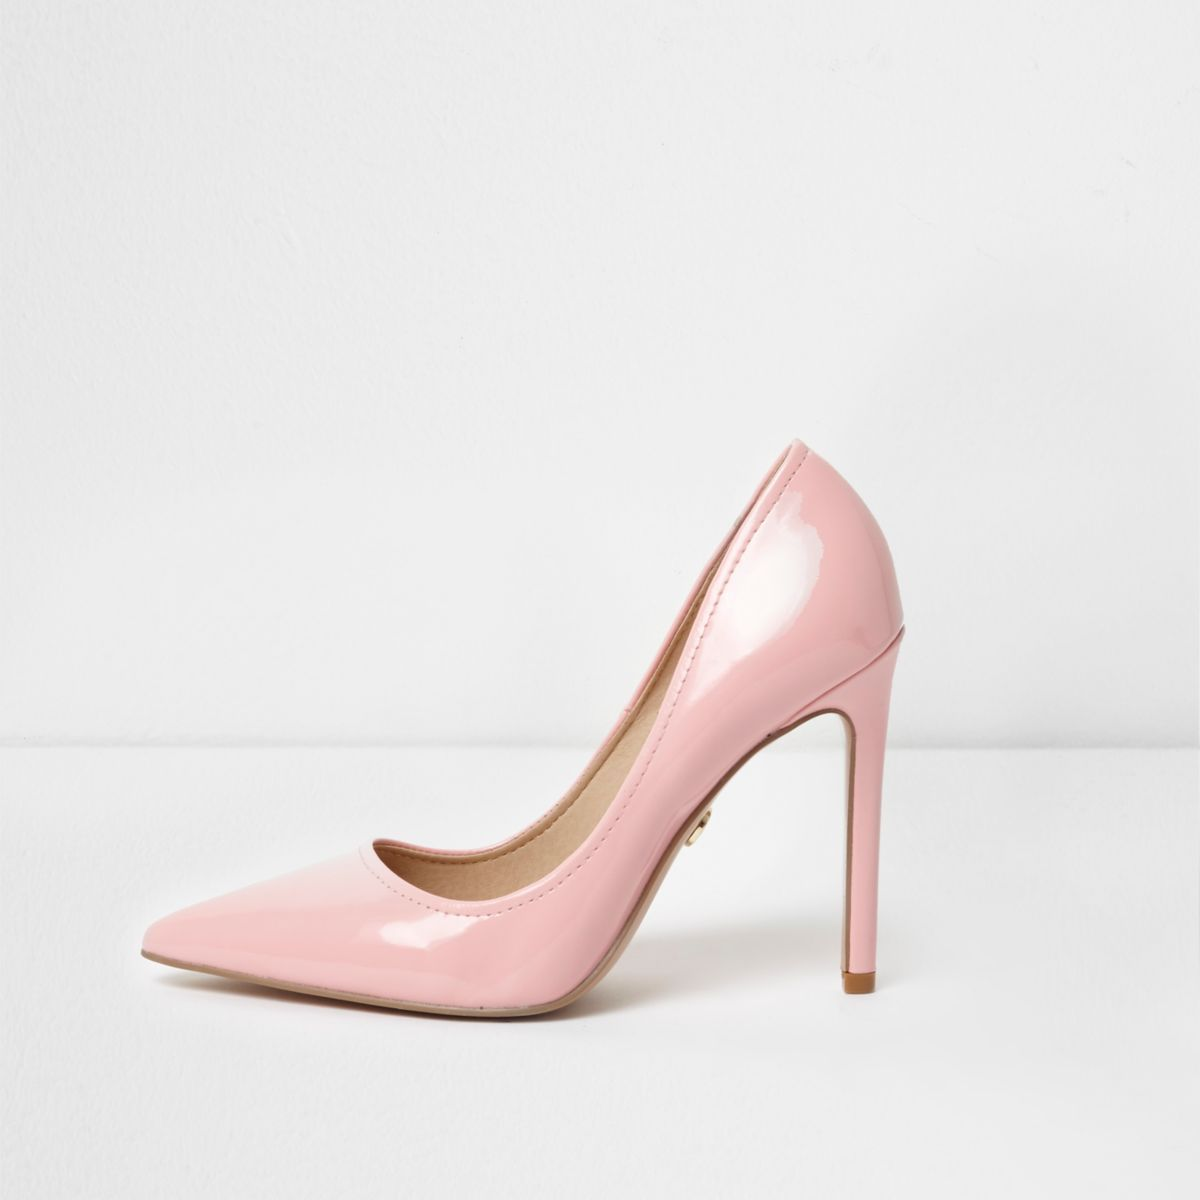 20695b5453f Light pink patent pointed toe court shoes | Shoesy(My Cinderella ...